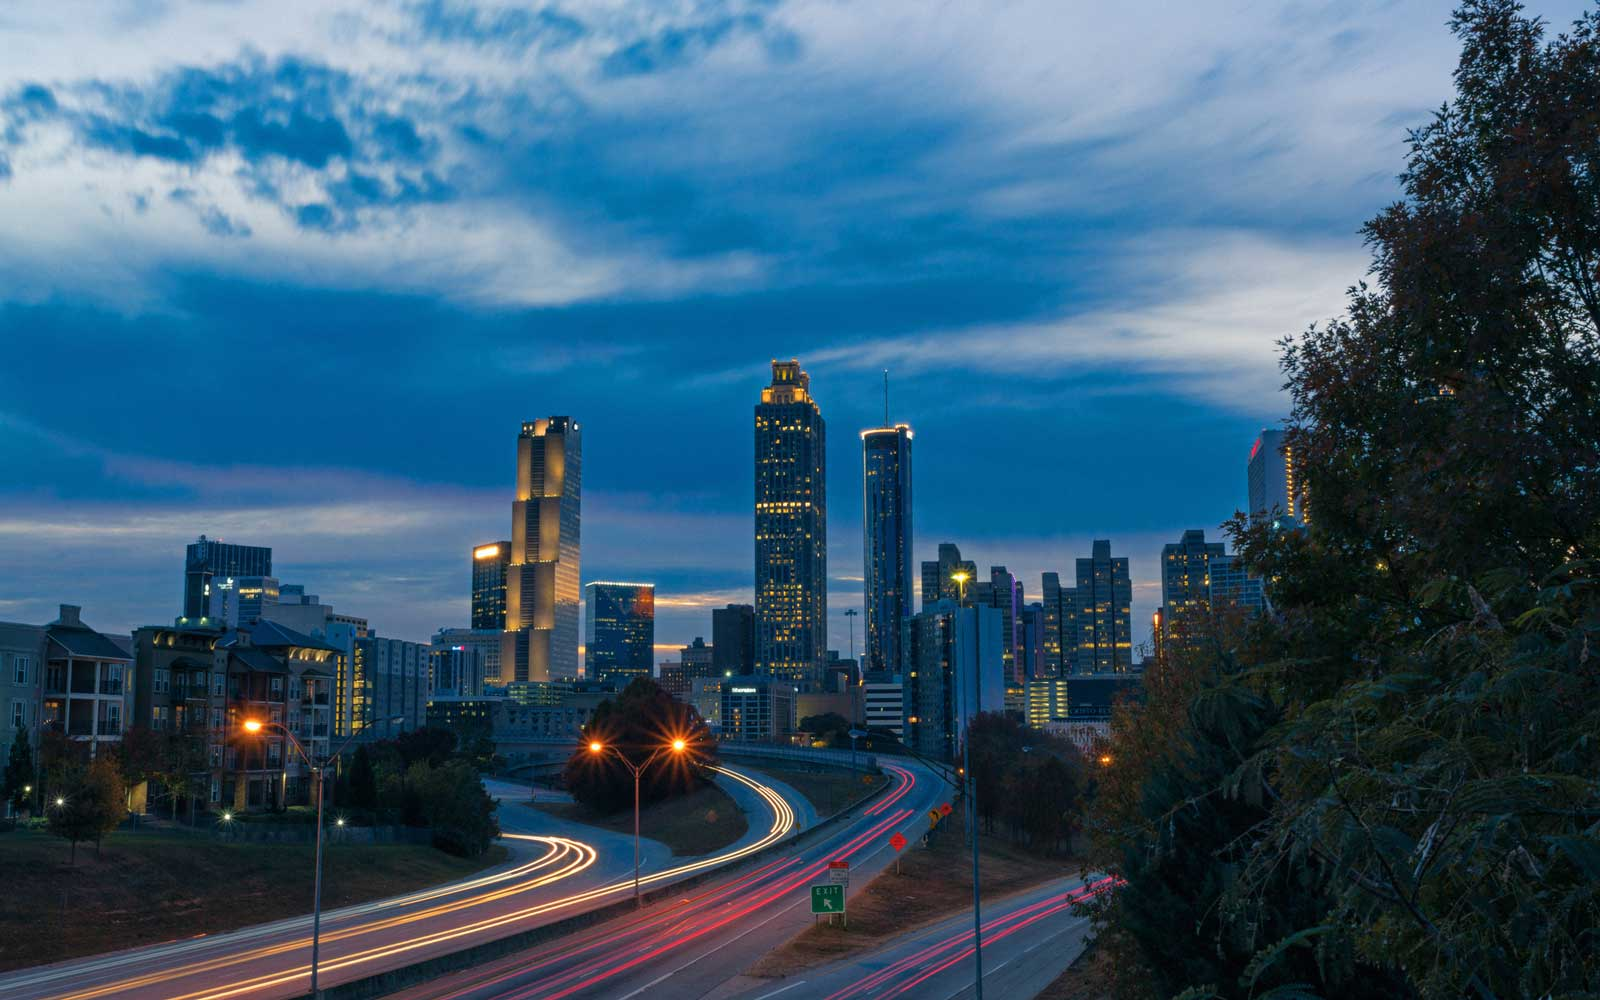 Cityscape of the Atlanta, Georgia skyline.